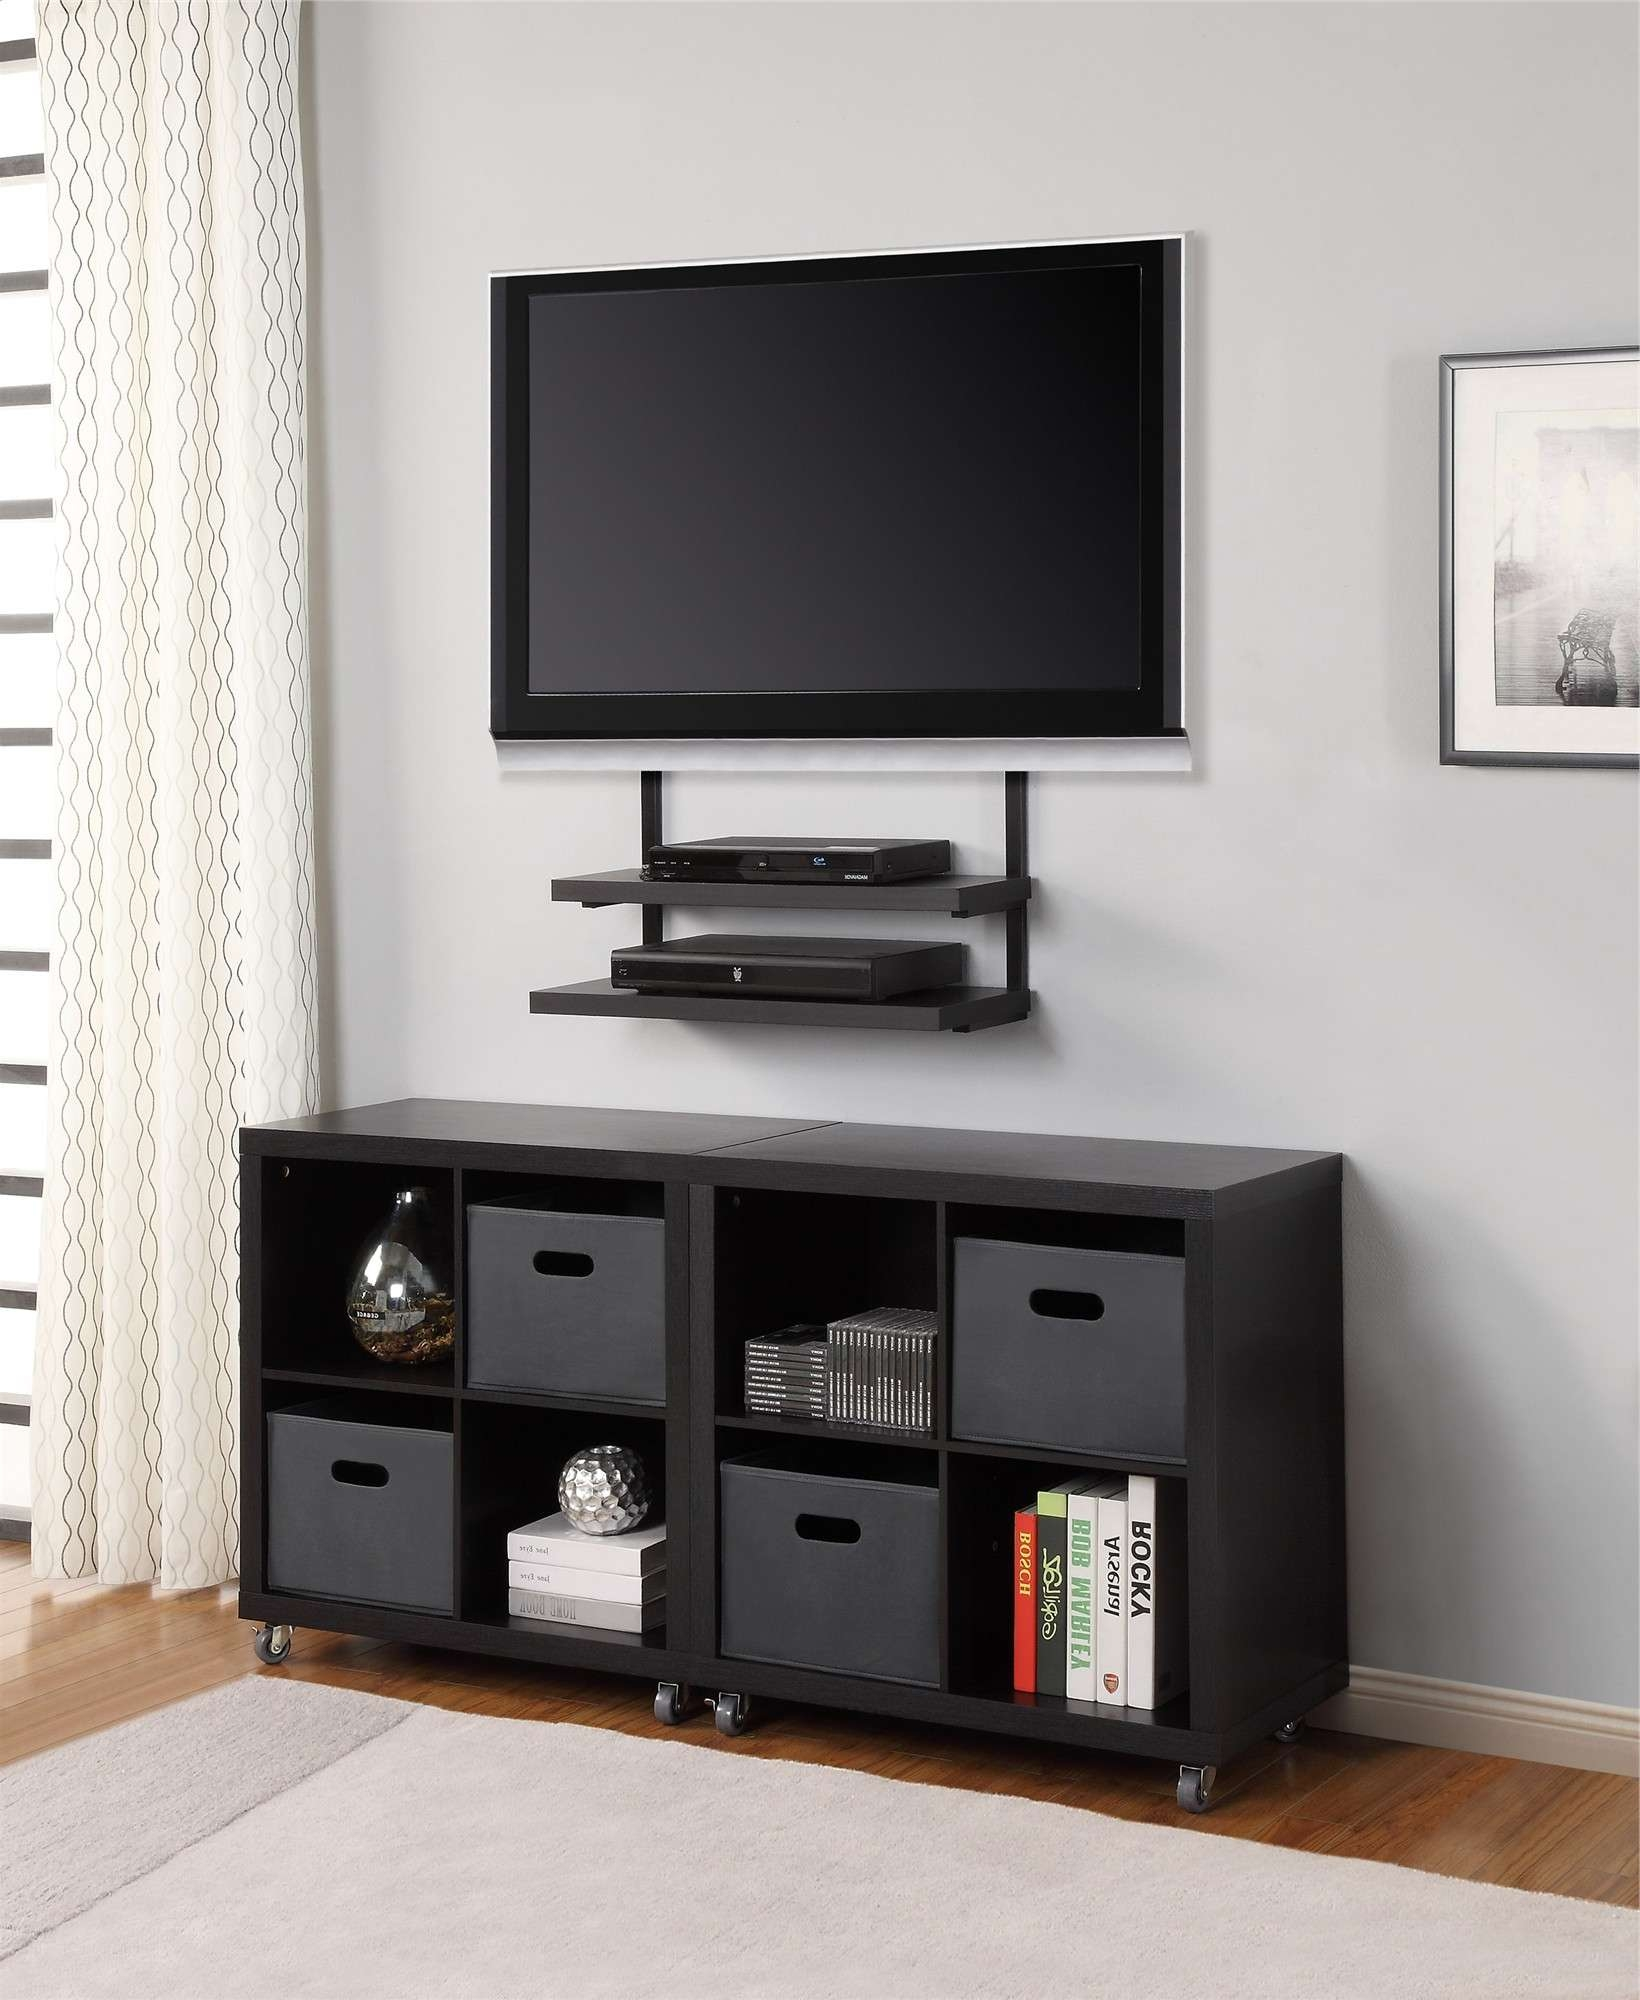 Decoration : 32 Tv Wall Mount Tv Wall Bracket With Dvd Shelf With Wall Mounted Under Tv Cabinets (View 6 of 20)